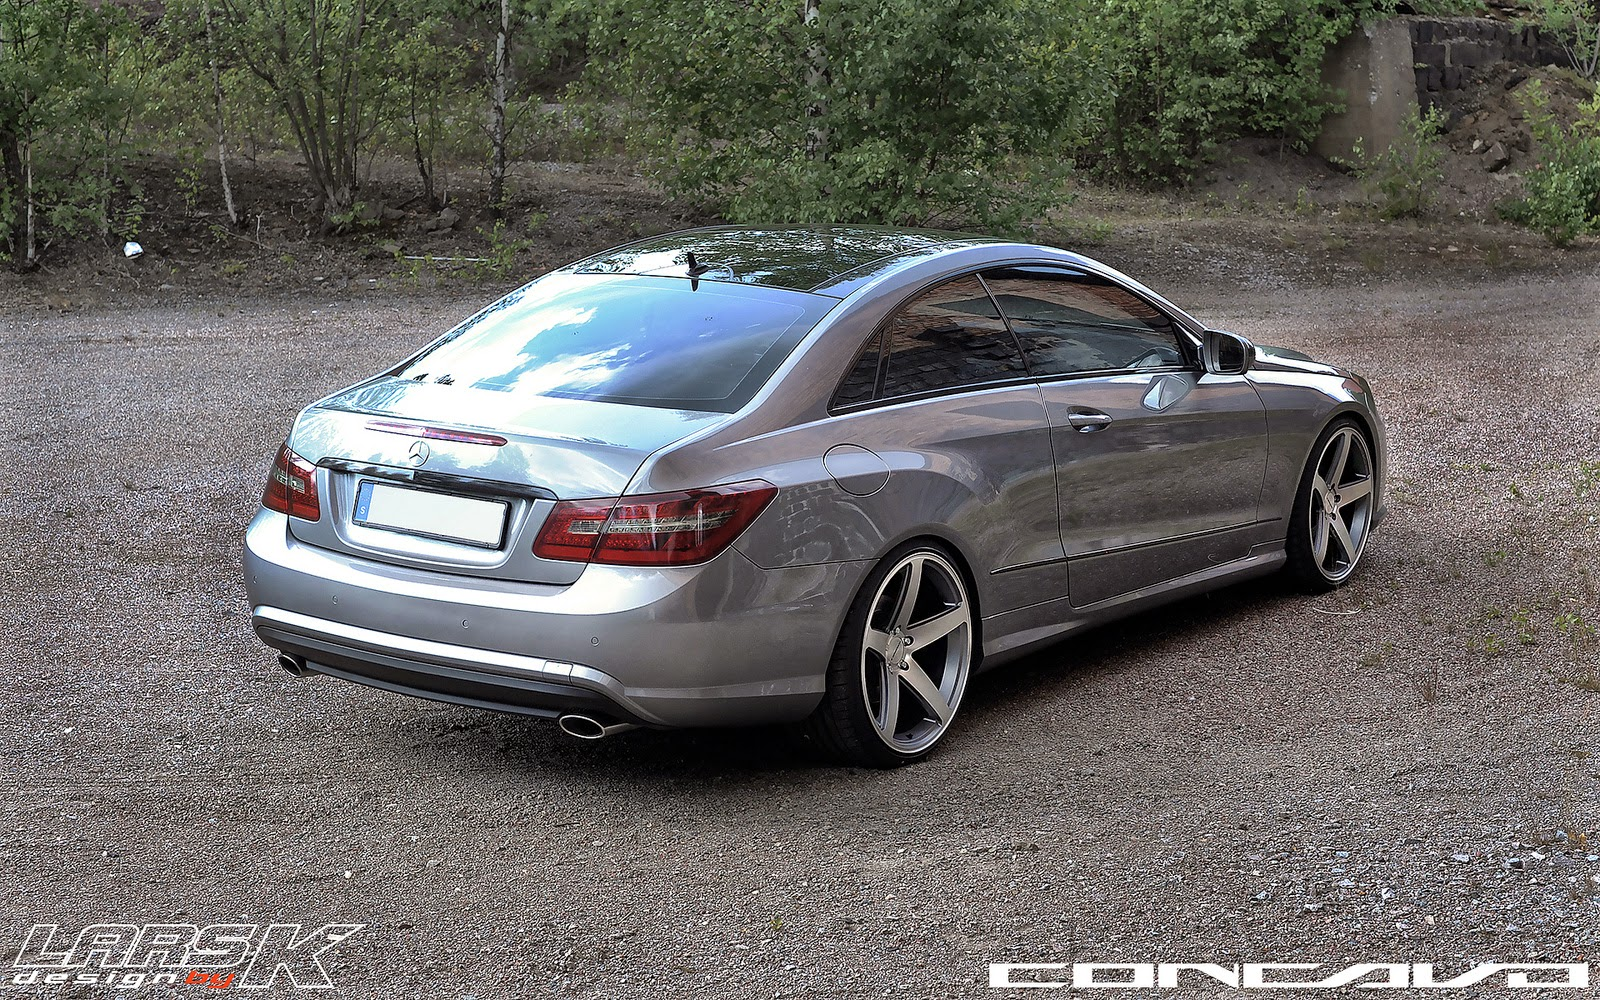 Mercedes benz w207 e350 on concavo cw 5 benztuning for Mercedes benz wheel